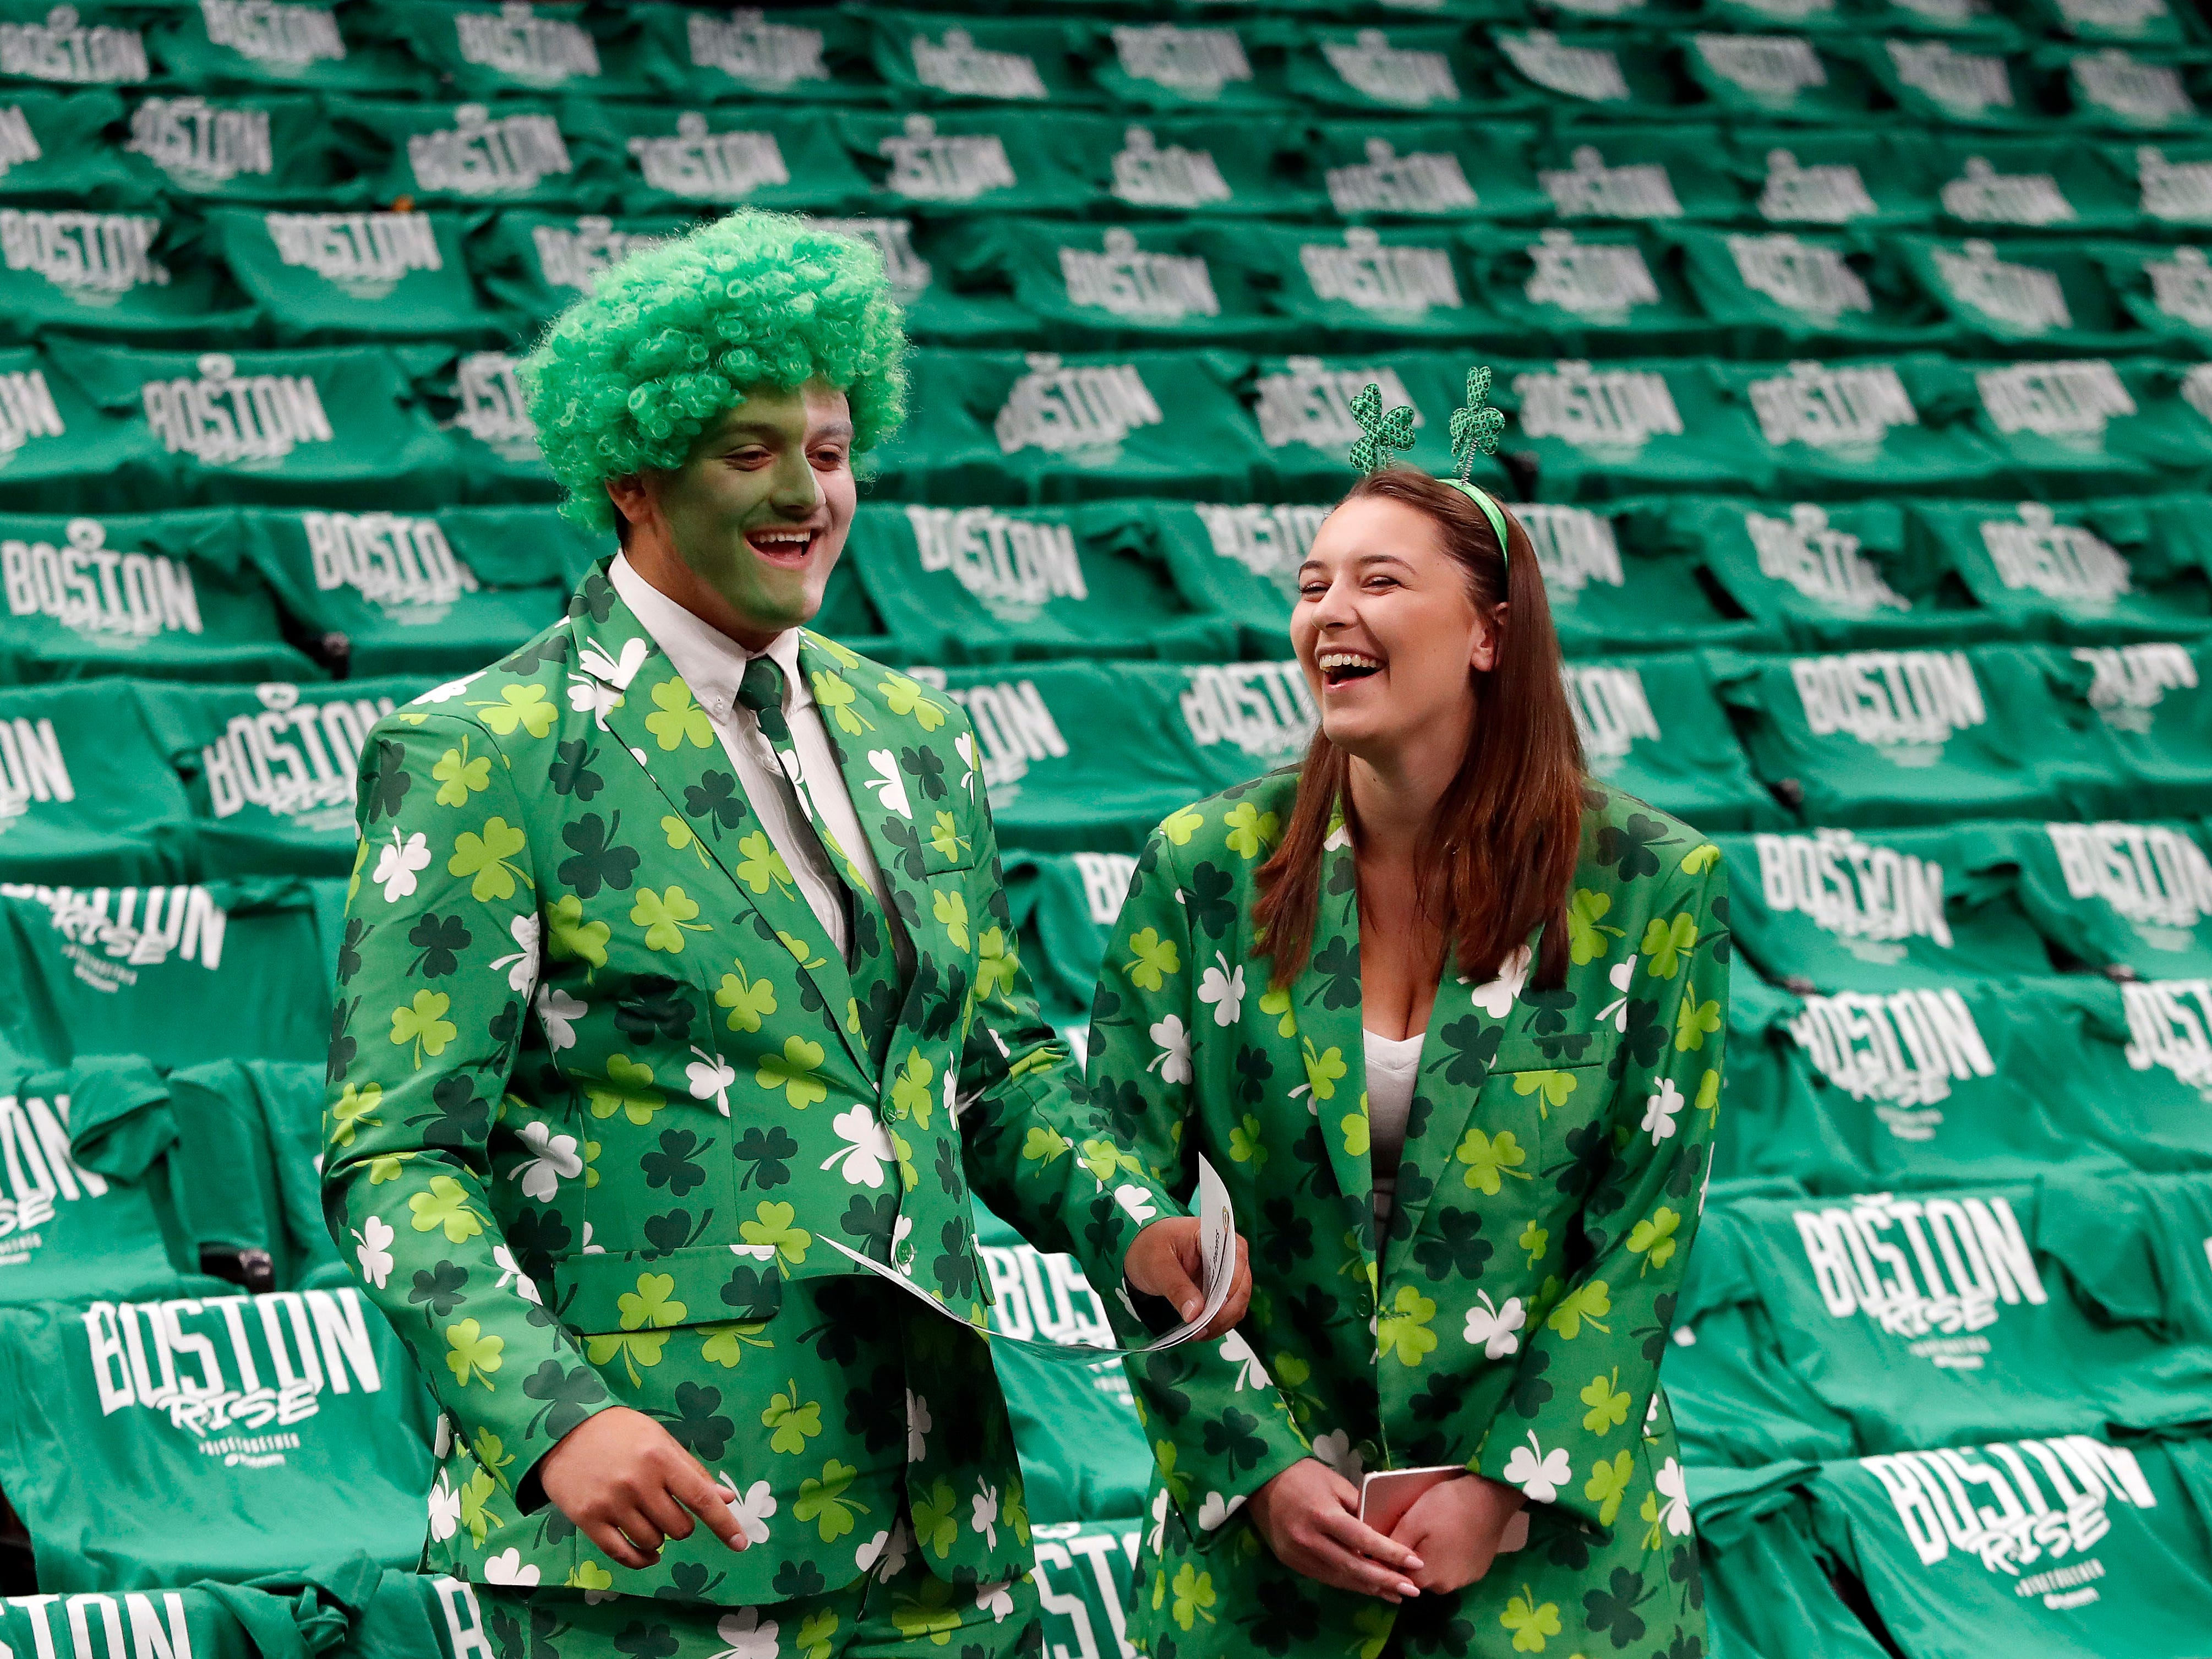 April 14: Celtics fans wait for the start of Game 1 against the Pacers.